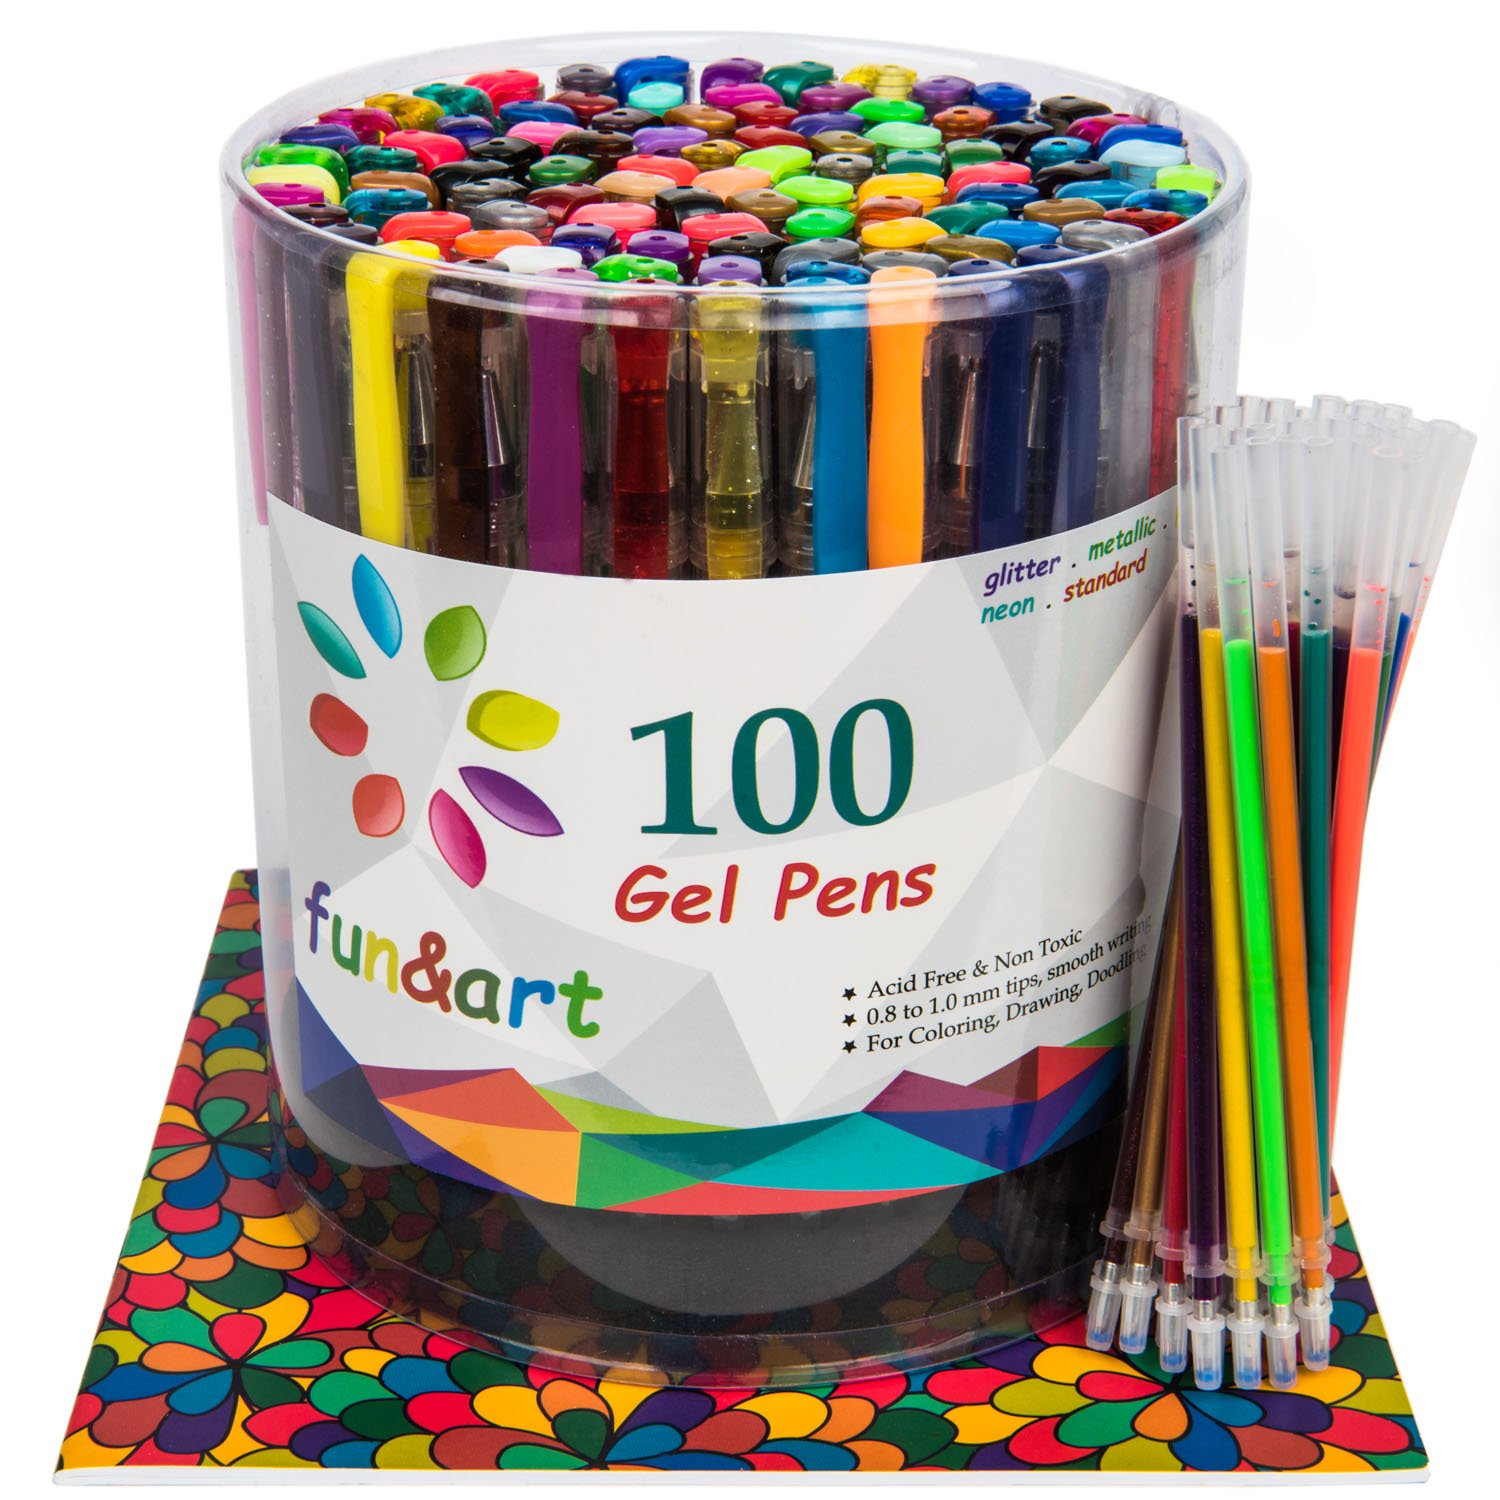 fun&art 130 Gel Pen Set Plus Free Bonus Adult Coloring Book, 100 Glitter & Gel Pens Plus 30 Extra Ink Refills with Case and Base Stand, Non Toxic Safe for Kids. by fun&art